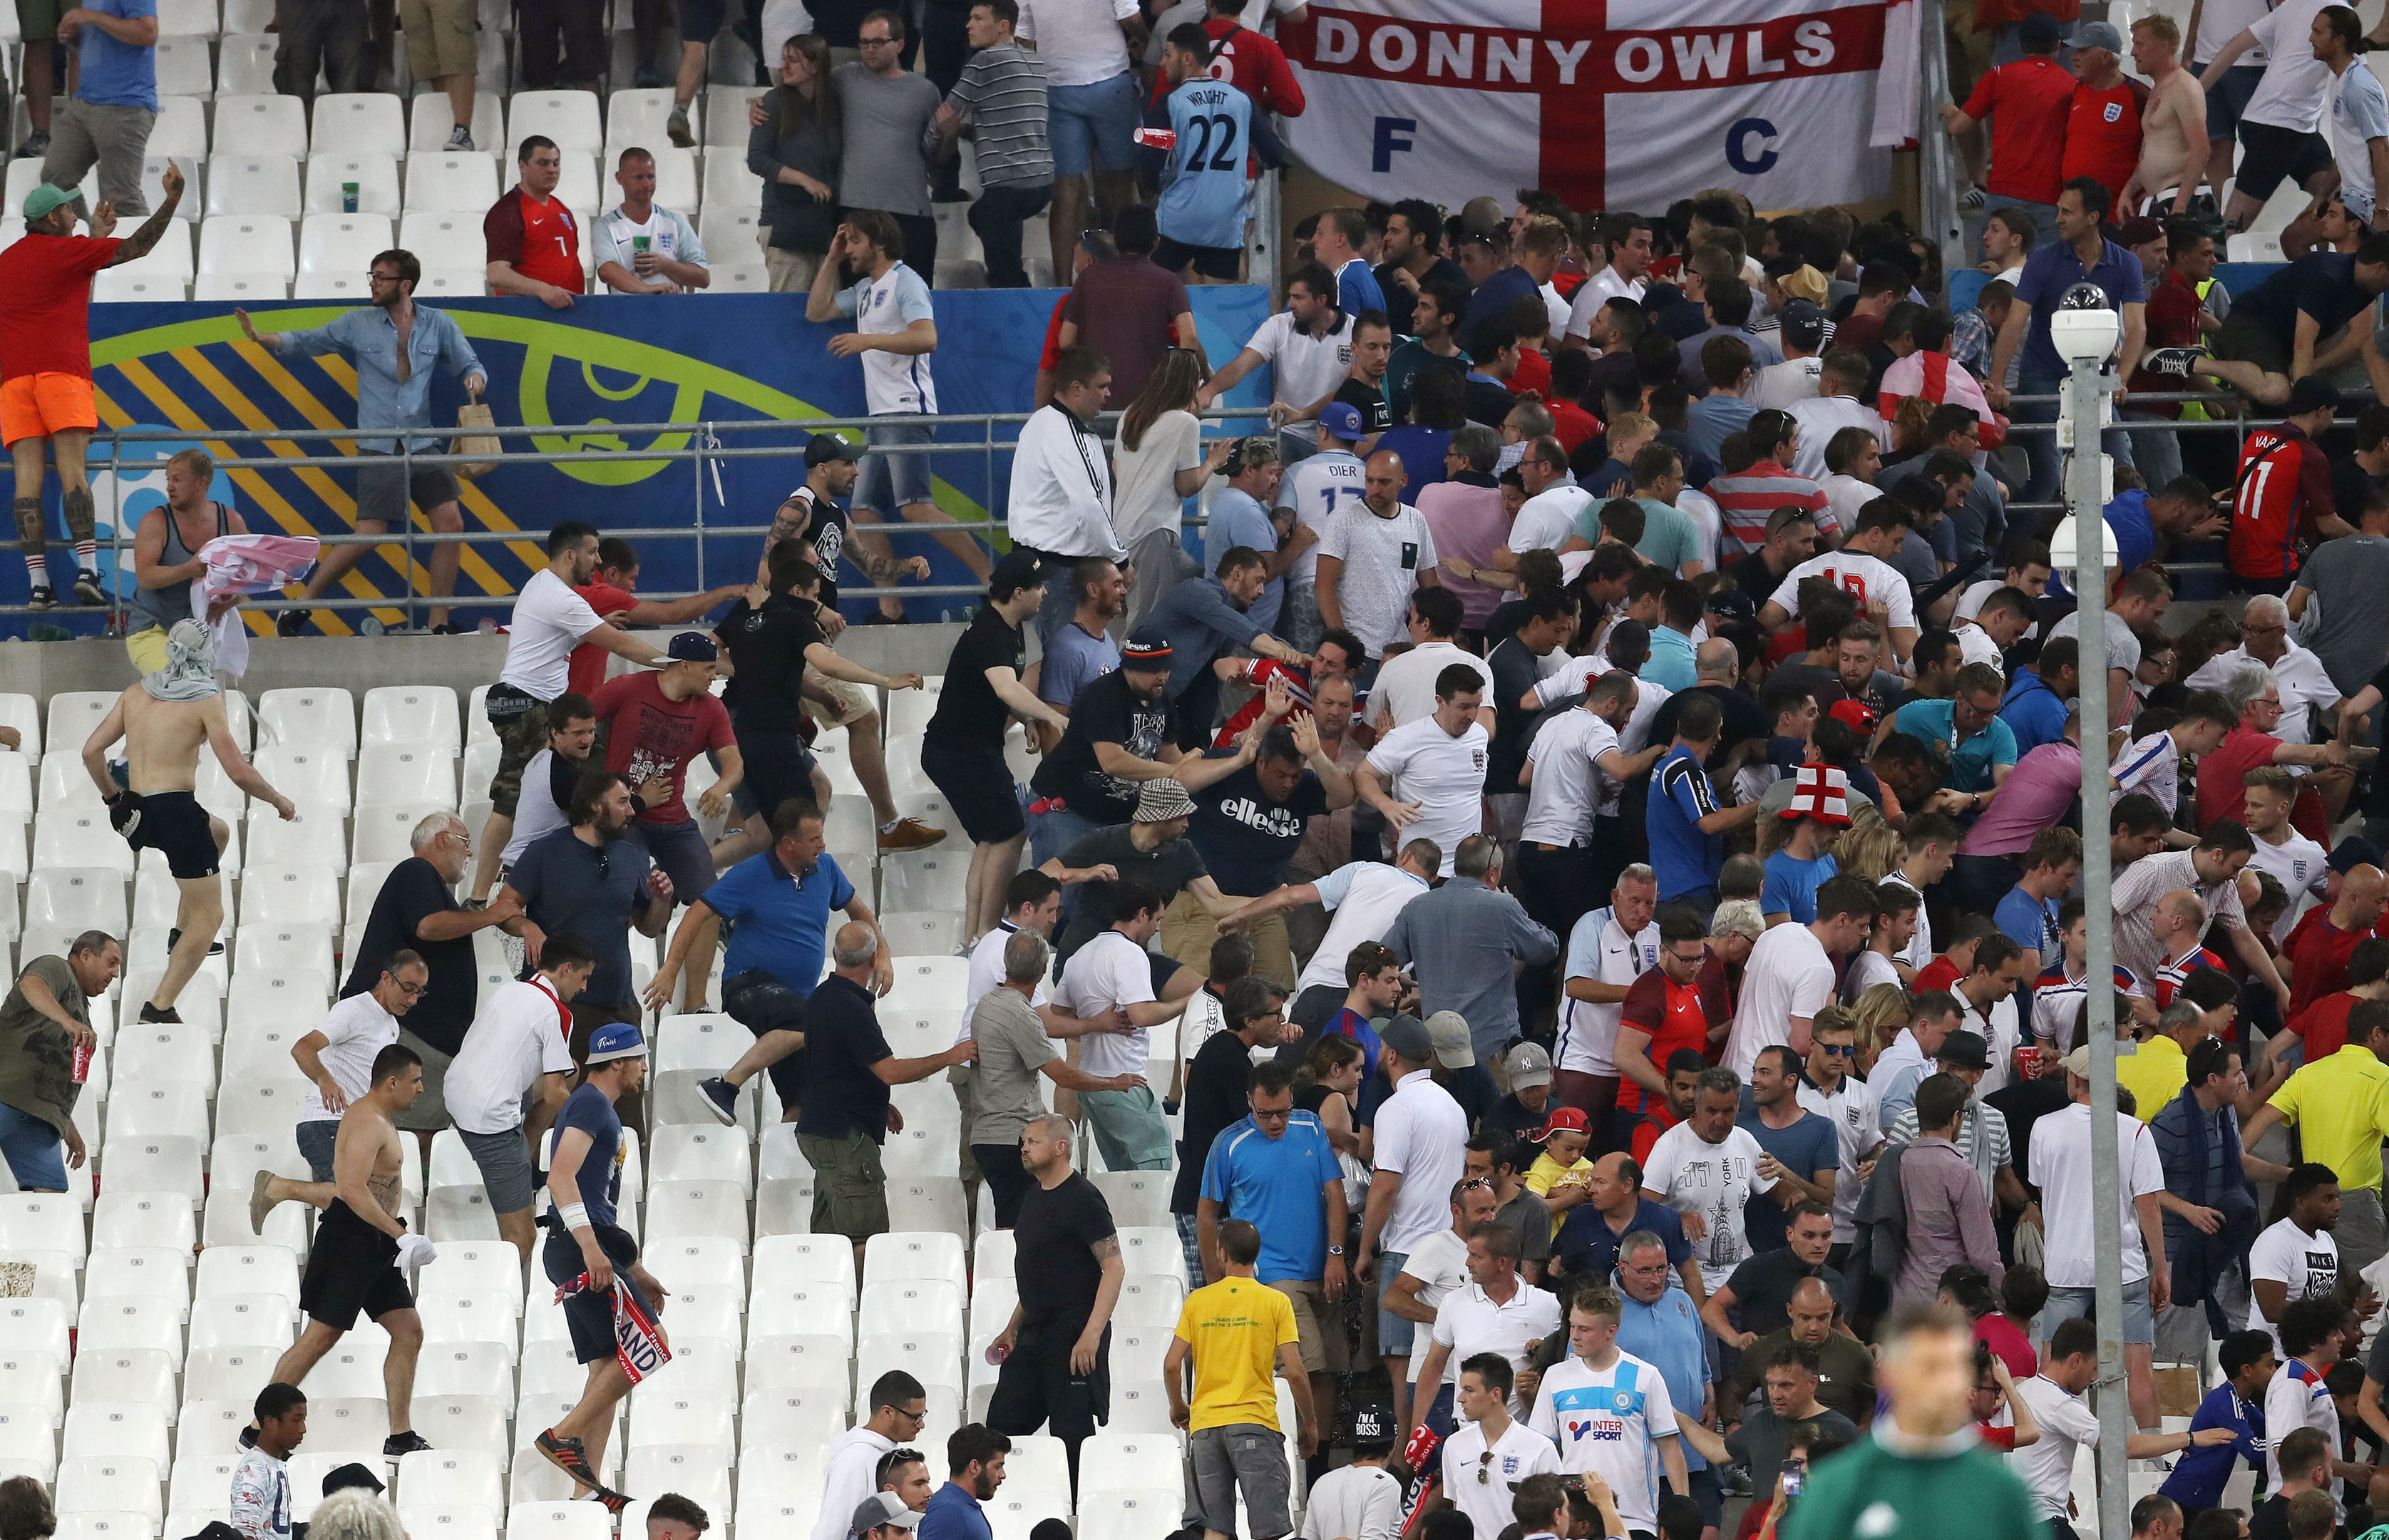 Tempers flare in the stands between Russia and England fans during their Euro 2016 match.